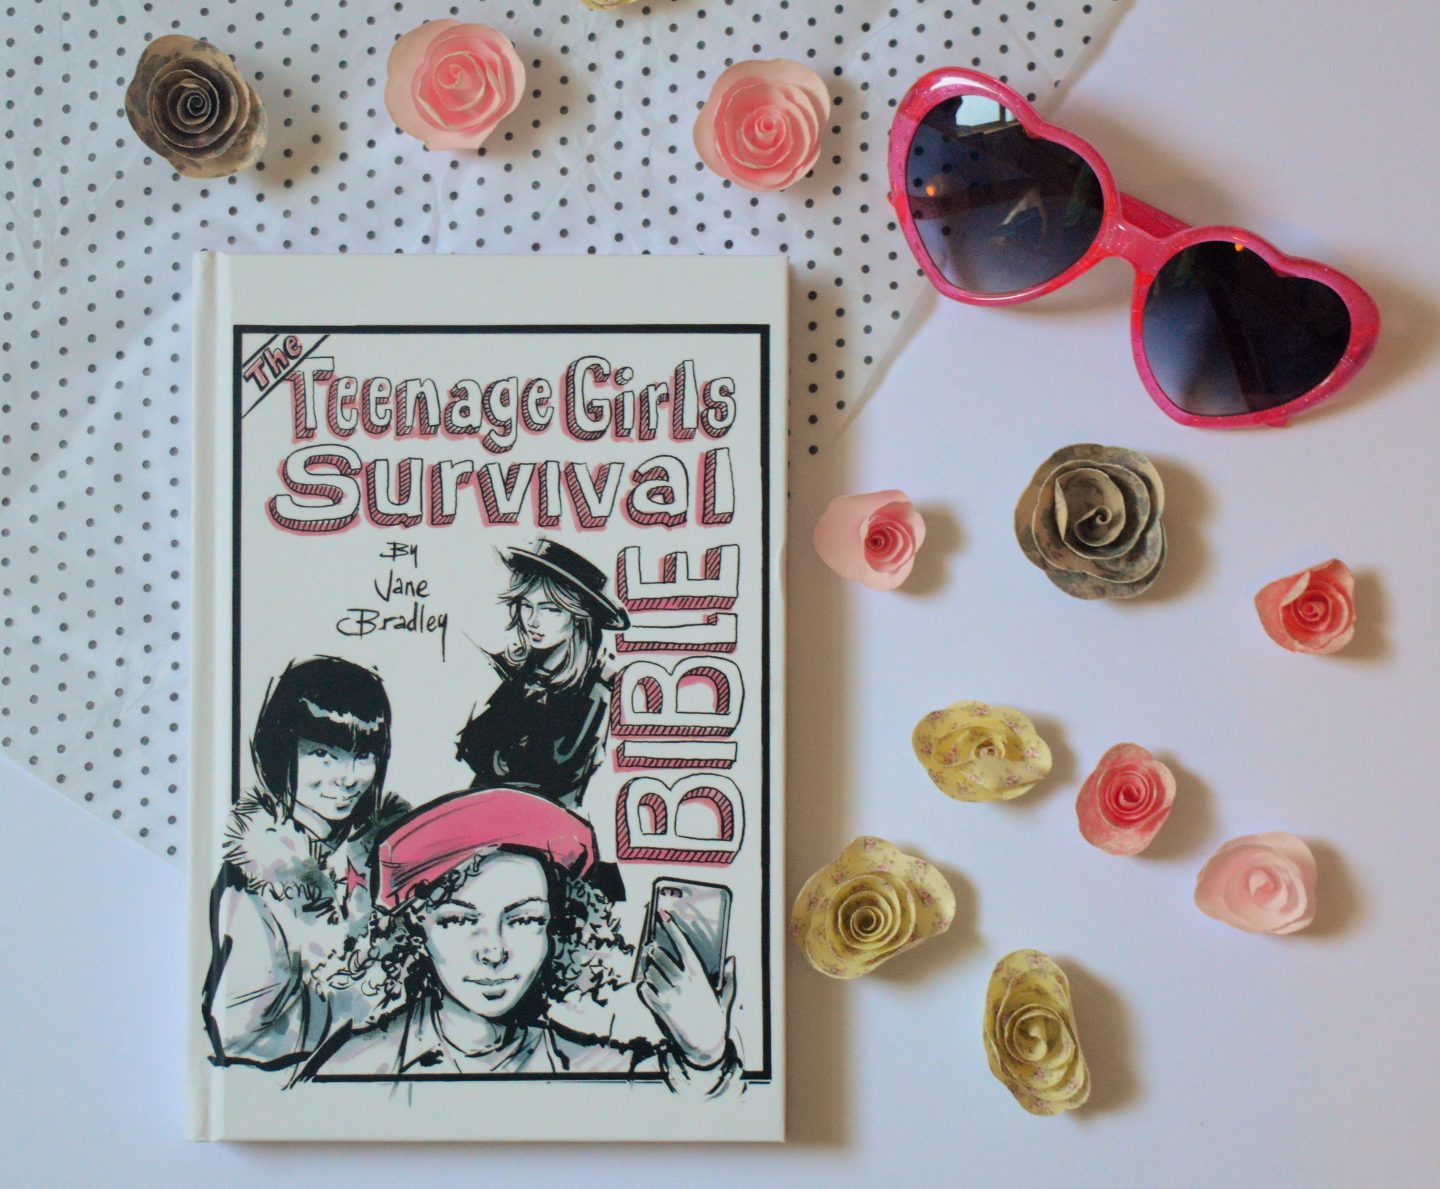 Book Review: The Teenage Girls Survival Bible by Jane Bradley